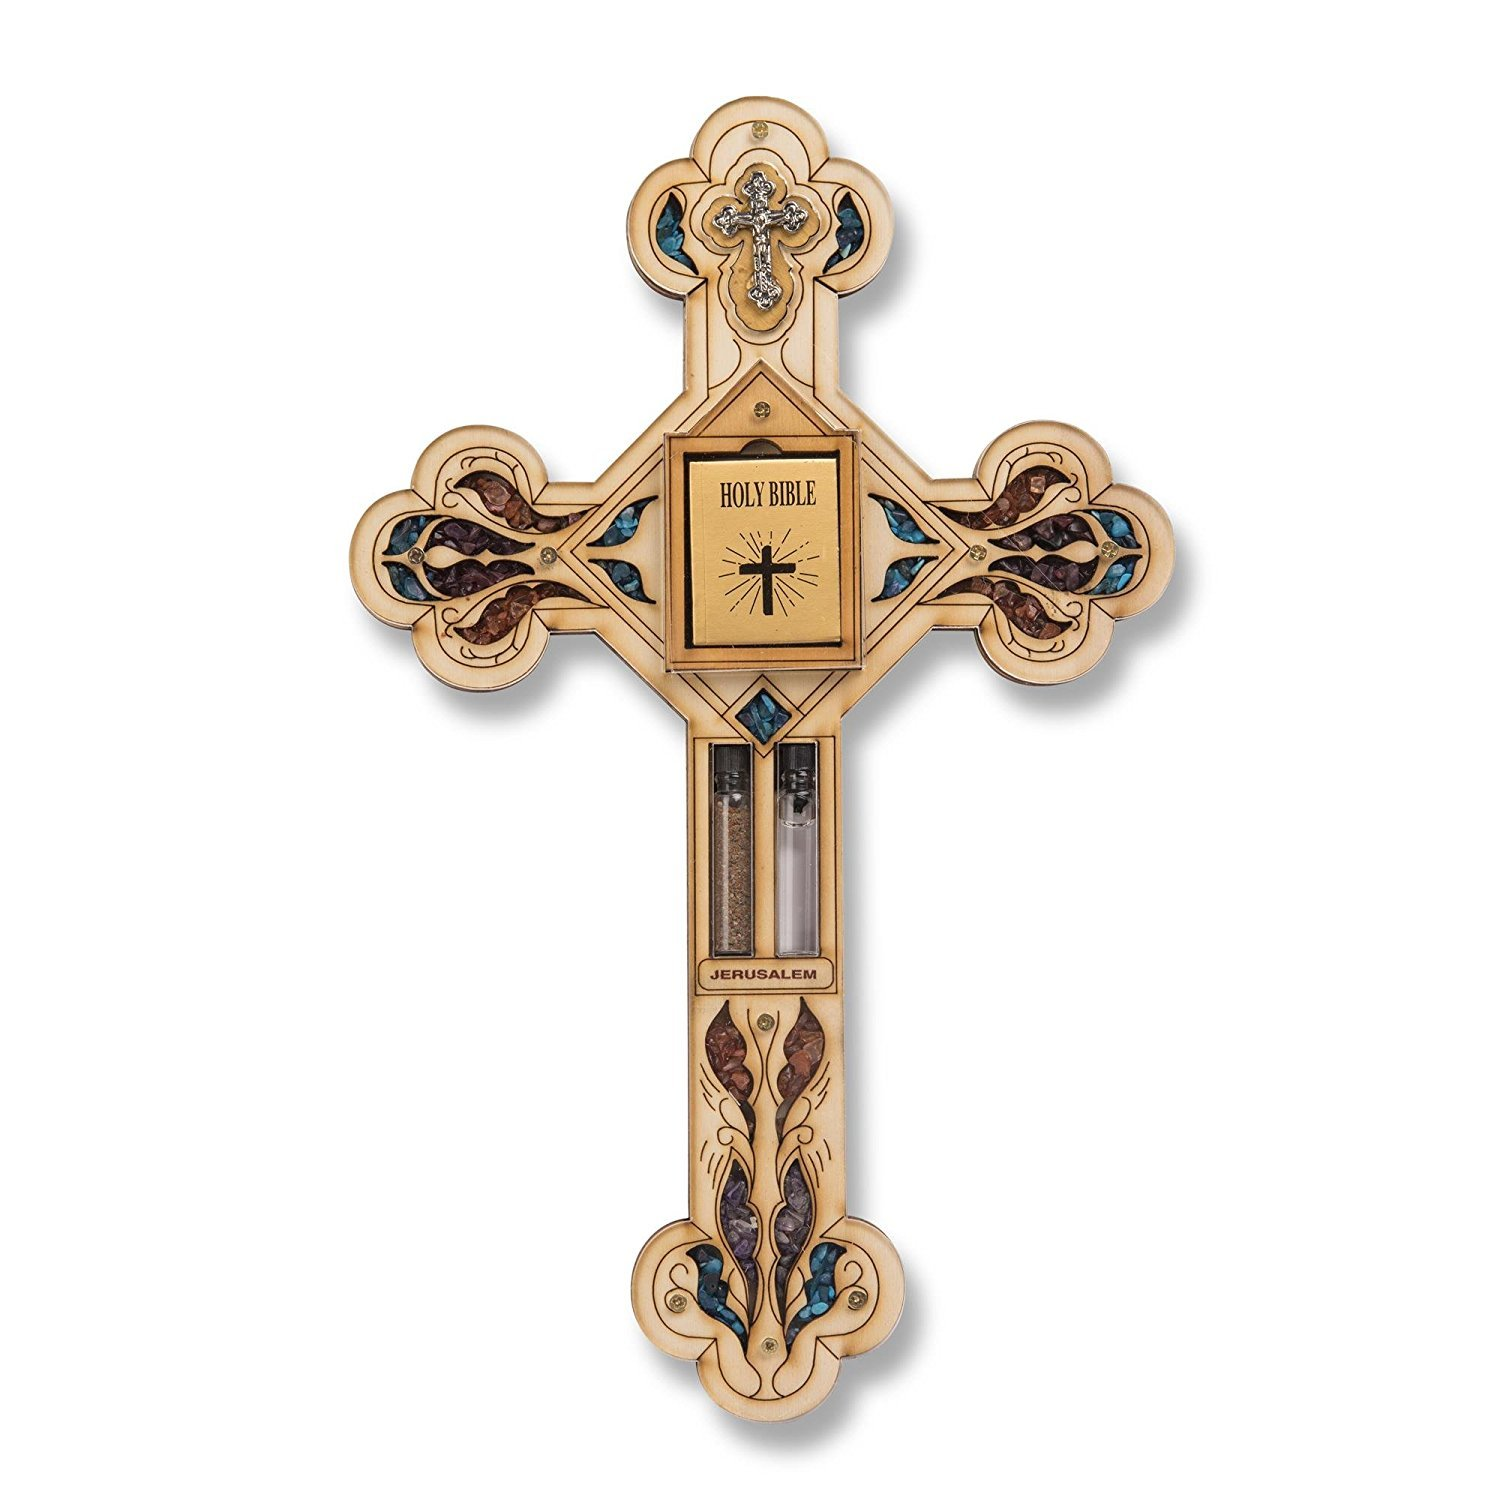 29cm Wooden Cross Jesus Christ Holy Bible Holy Water Earth Wall Hanging Gift Anandashop 001x-MTL830M-6